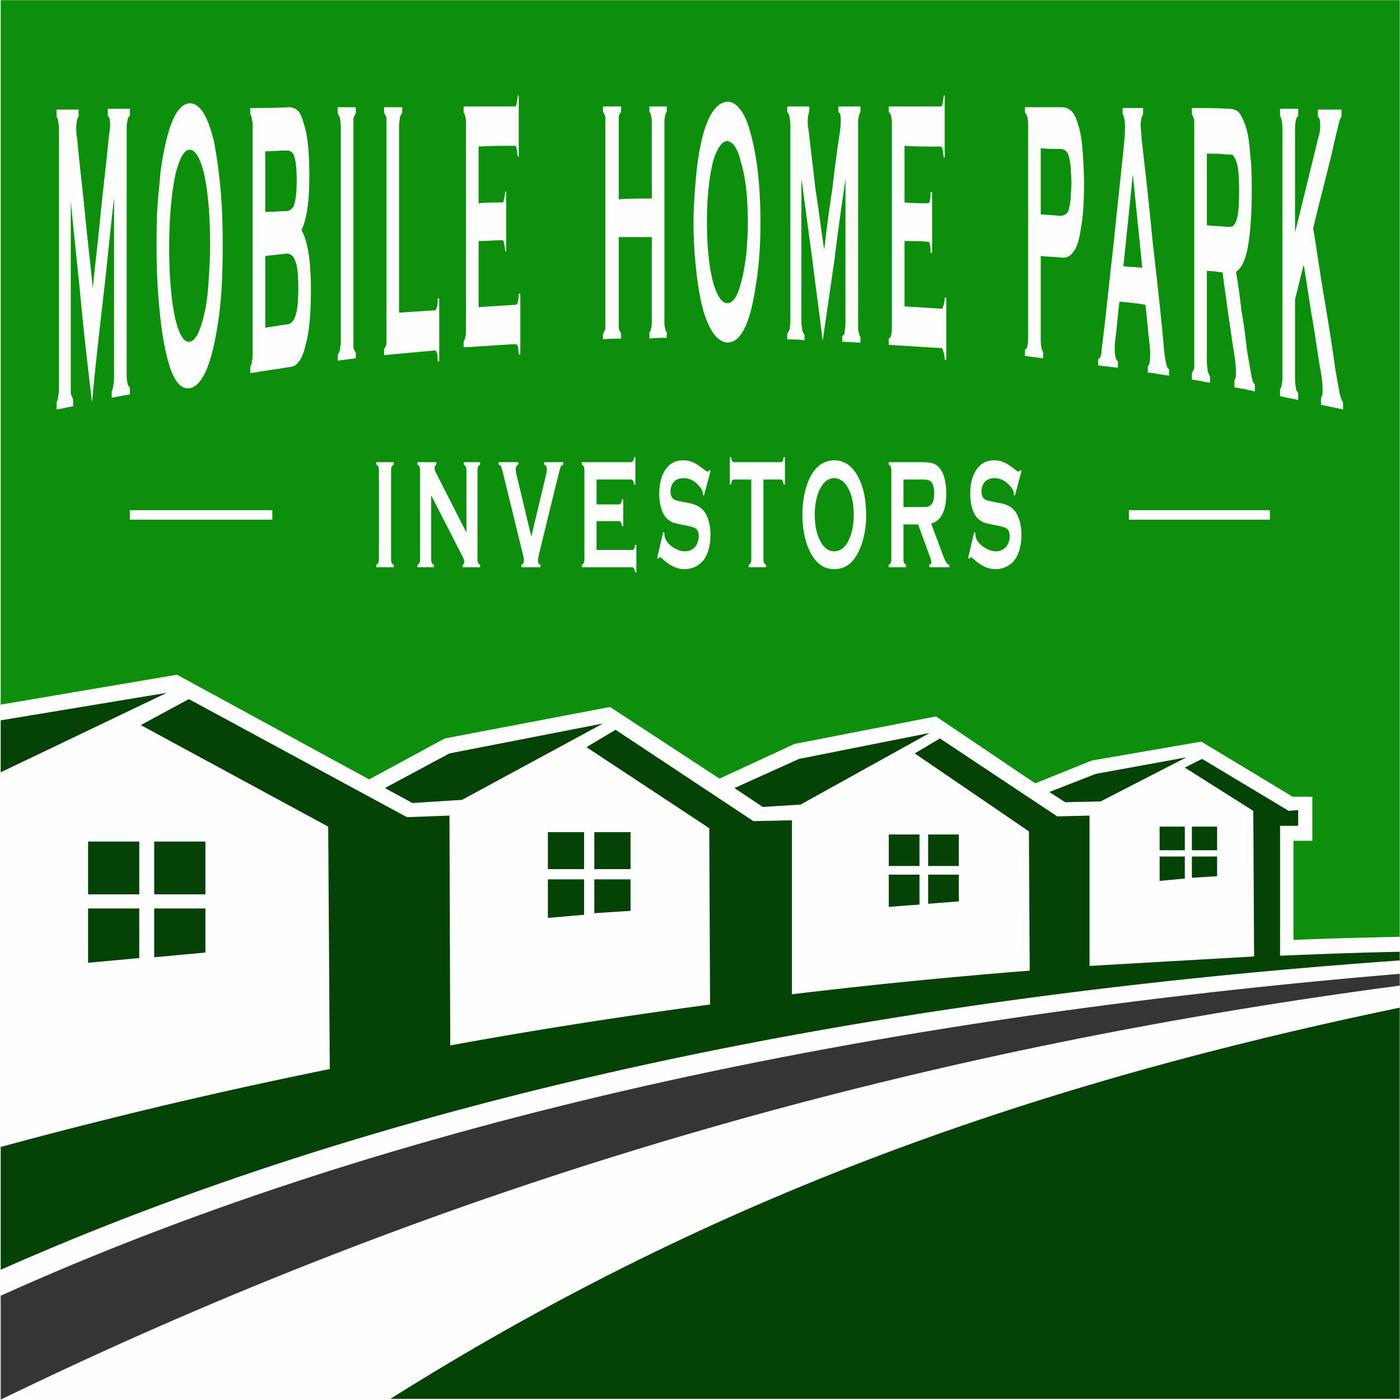 Mobile Home Park Investors with Jefferson Lilly & d Johnson ... on rv trailer, three bedroom travel trailer, atv trailer, flying home trailer, malibu travel trailer, mobile homes history, house trailer, mobile homes mobile homes that don't look like, mobile homes off-grid, loft trailer, 18' trailer, motor home trailer, mobile homes for auction, mobile homes built before 1976, 1968 nomad travel trailer, comet trailer, mobile homes of the 70's, to build a home on trailer, mobile homes with sunrooms, inside of a rundown trailer,